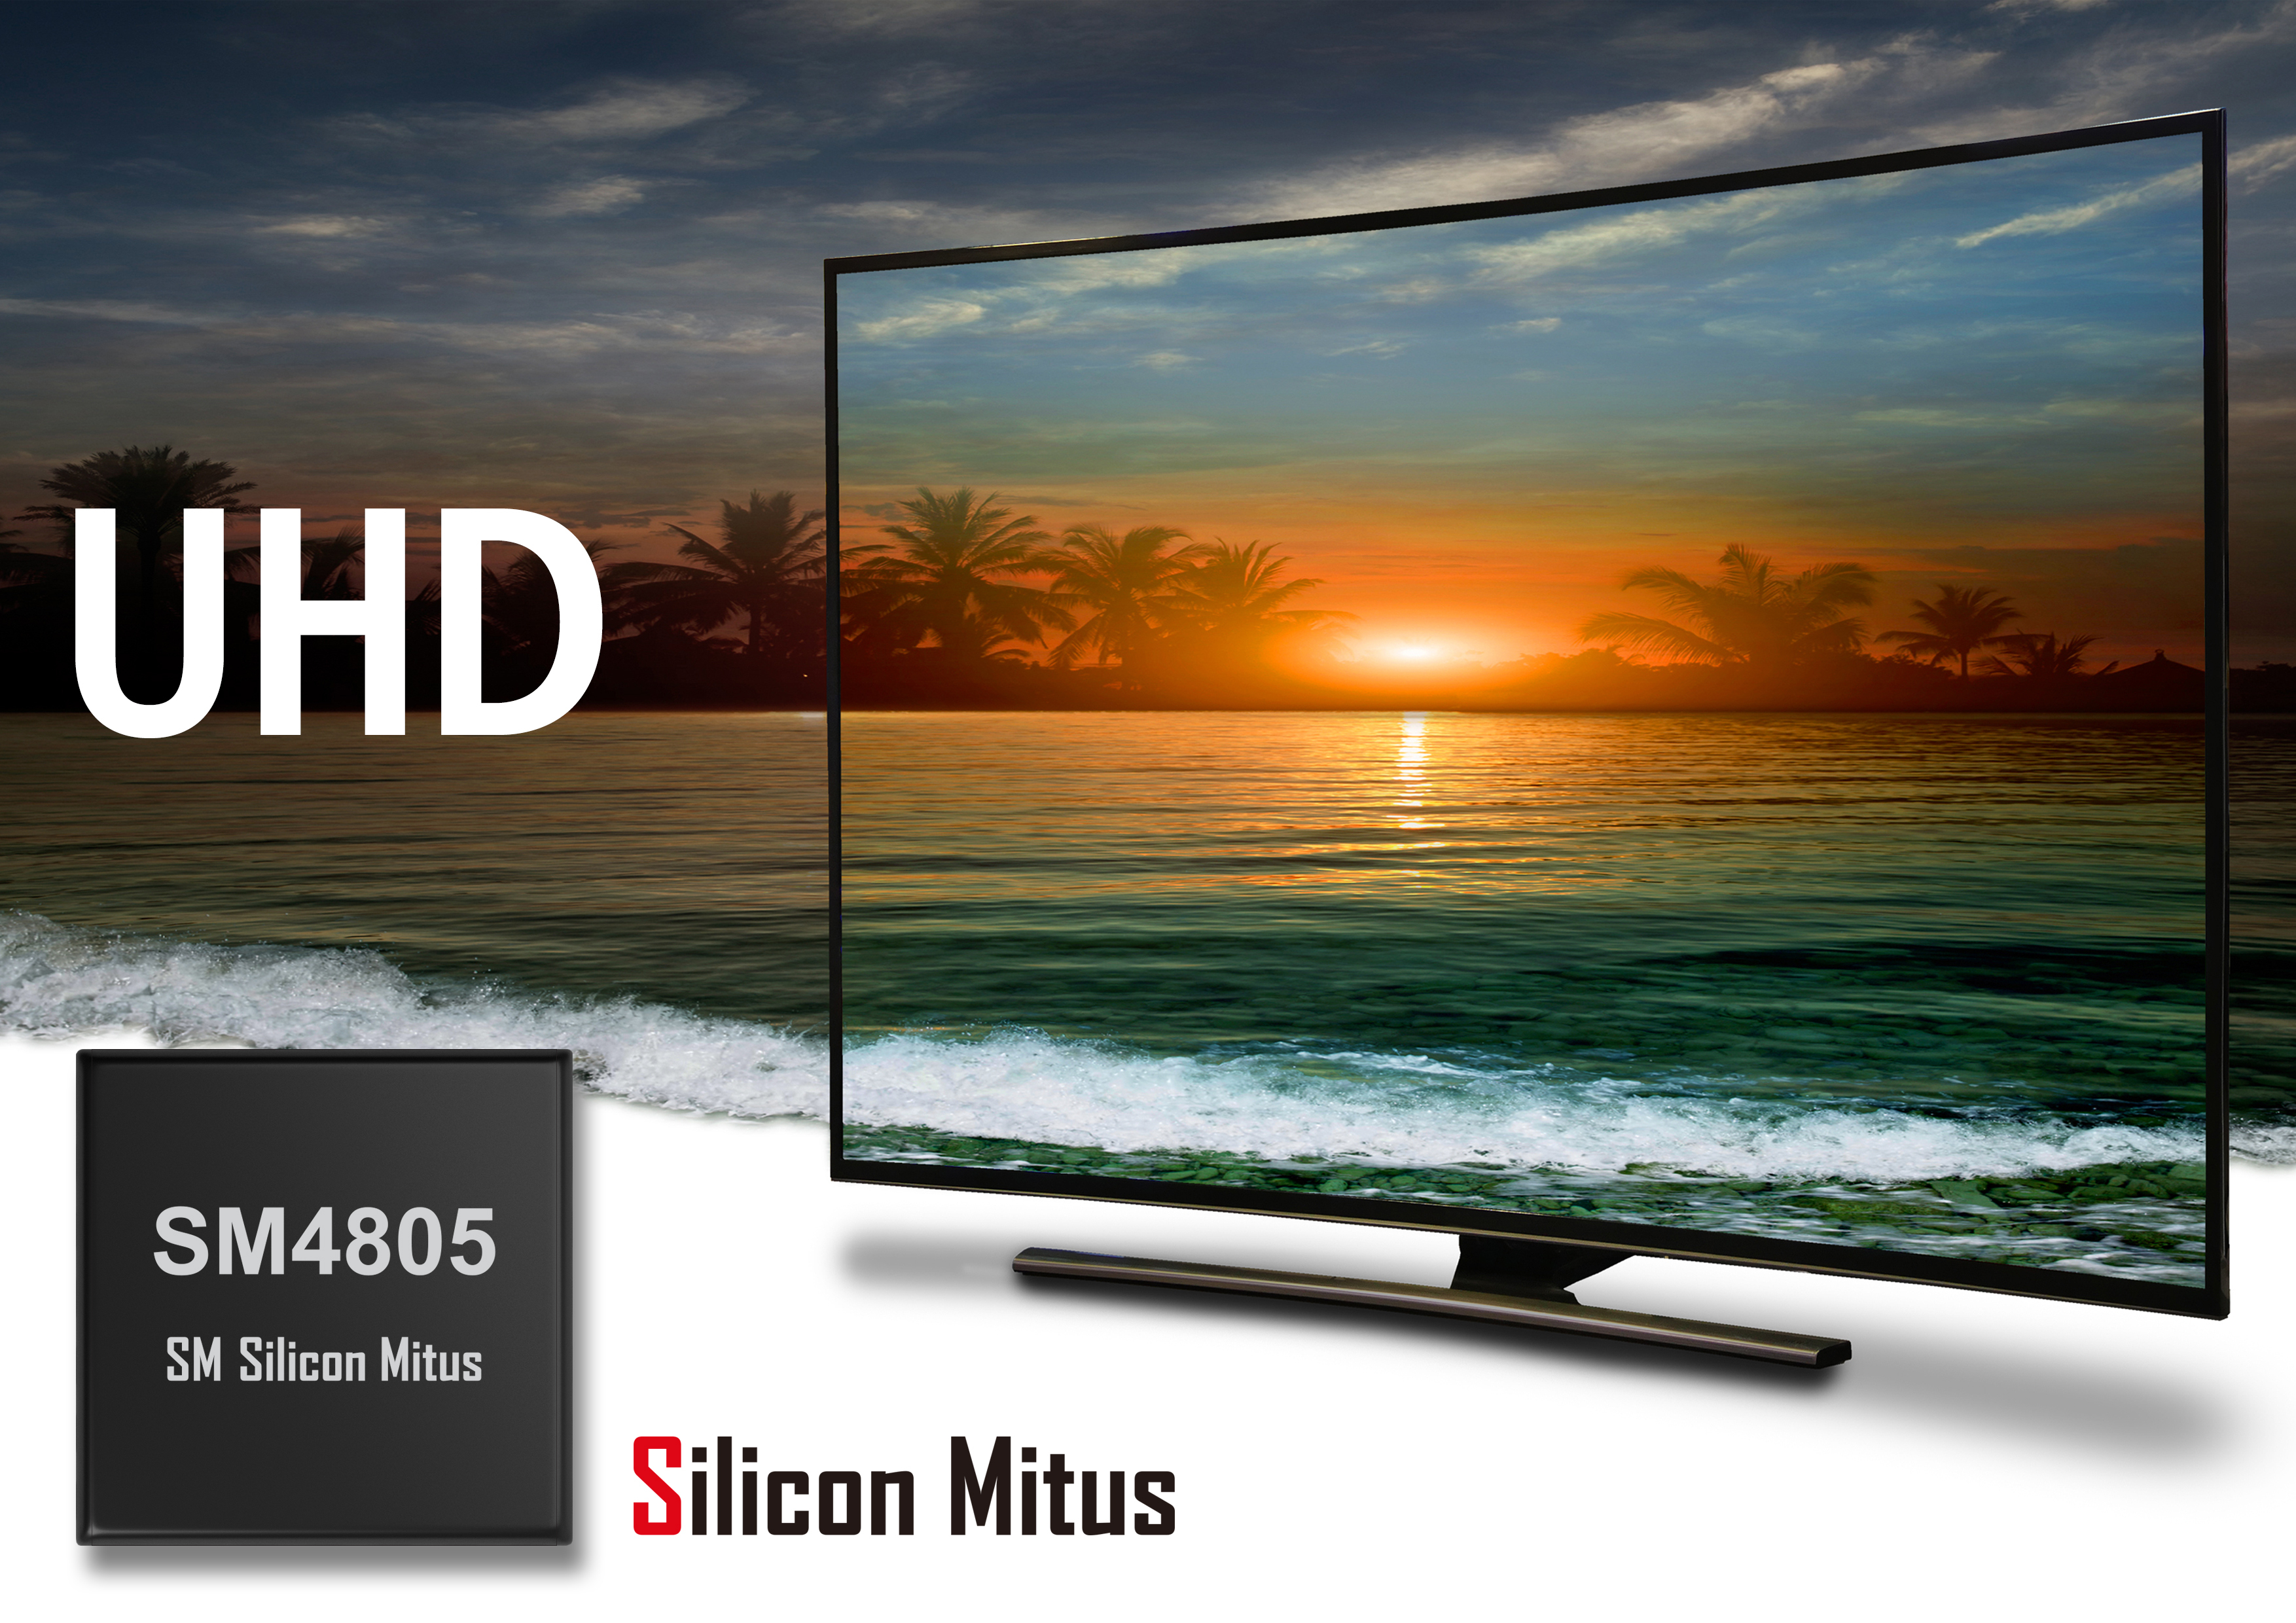 Silicon Mitus: Industry's First General-Purpose UHD TV LCD